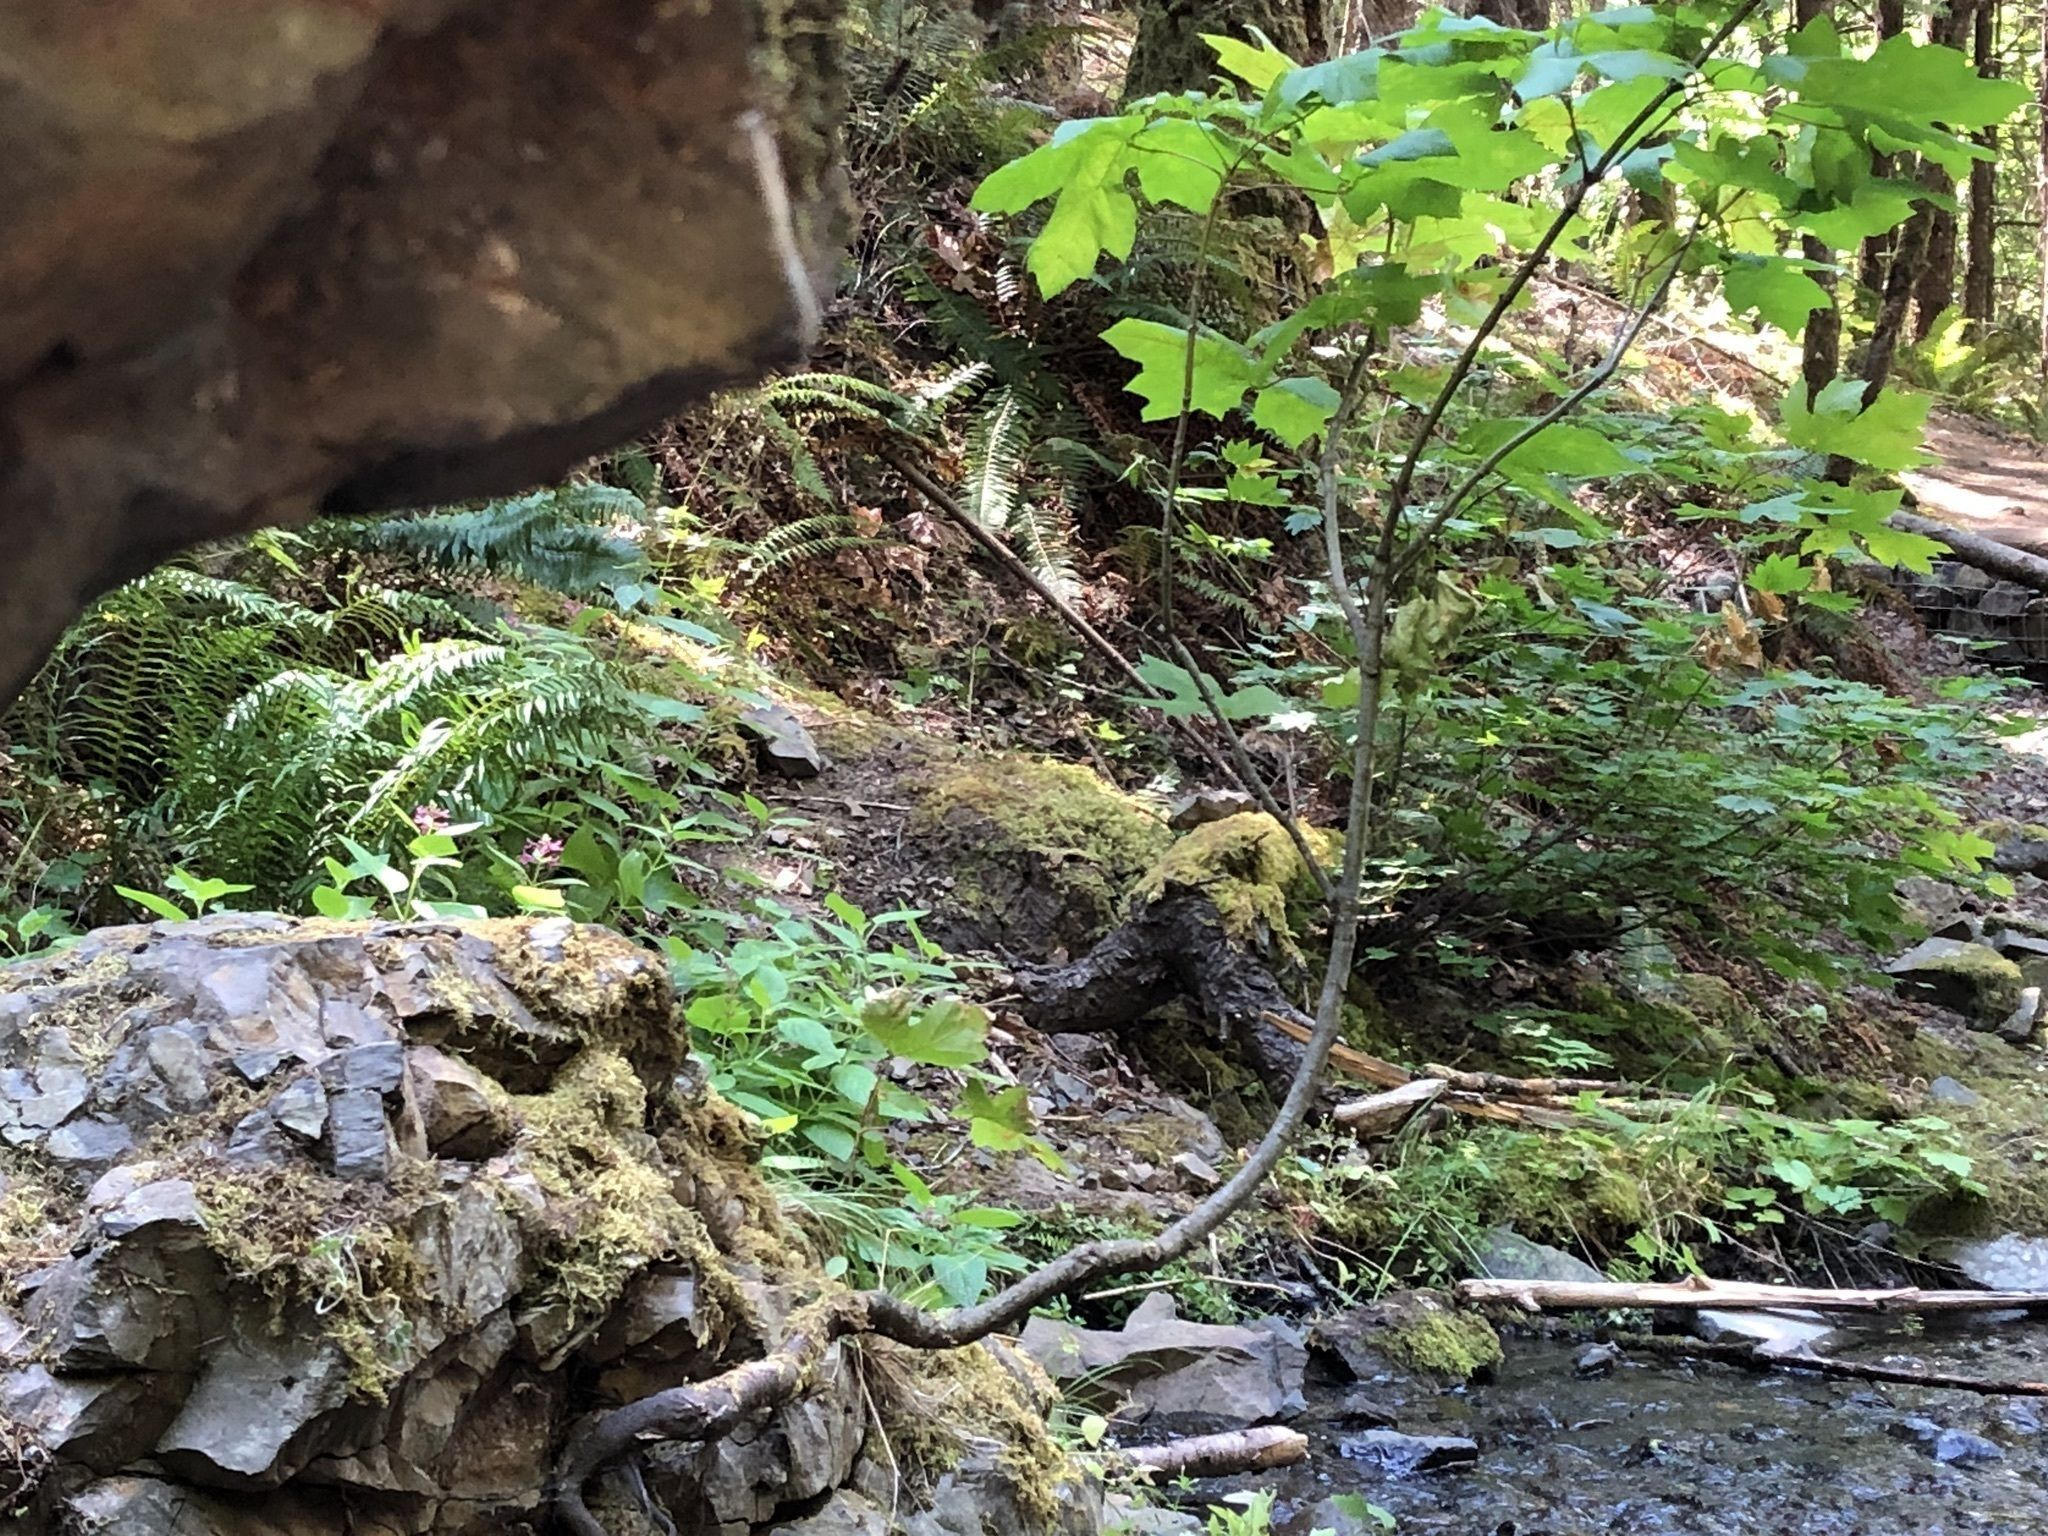 Cabin Creek & Hole-in-the Wall Falls via Starvation Creek Trail